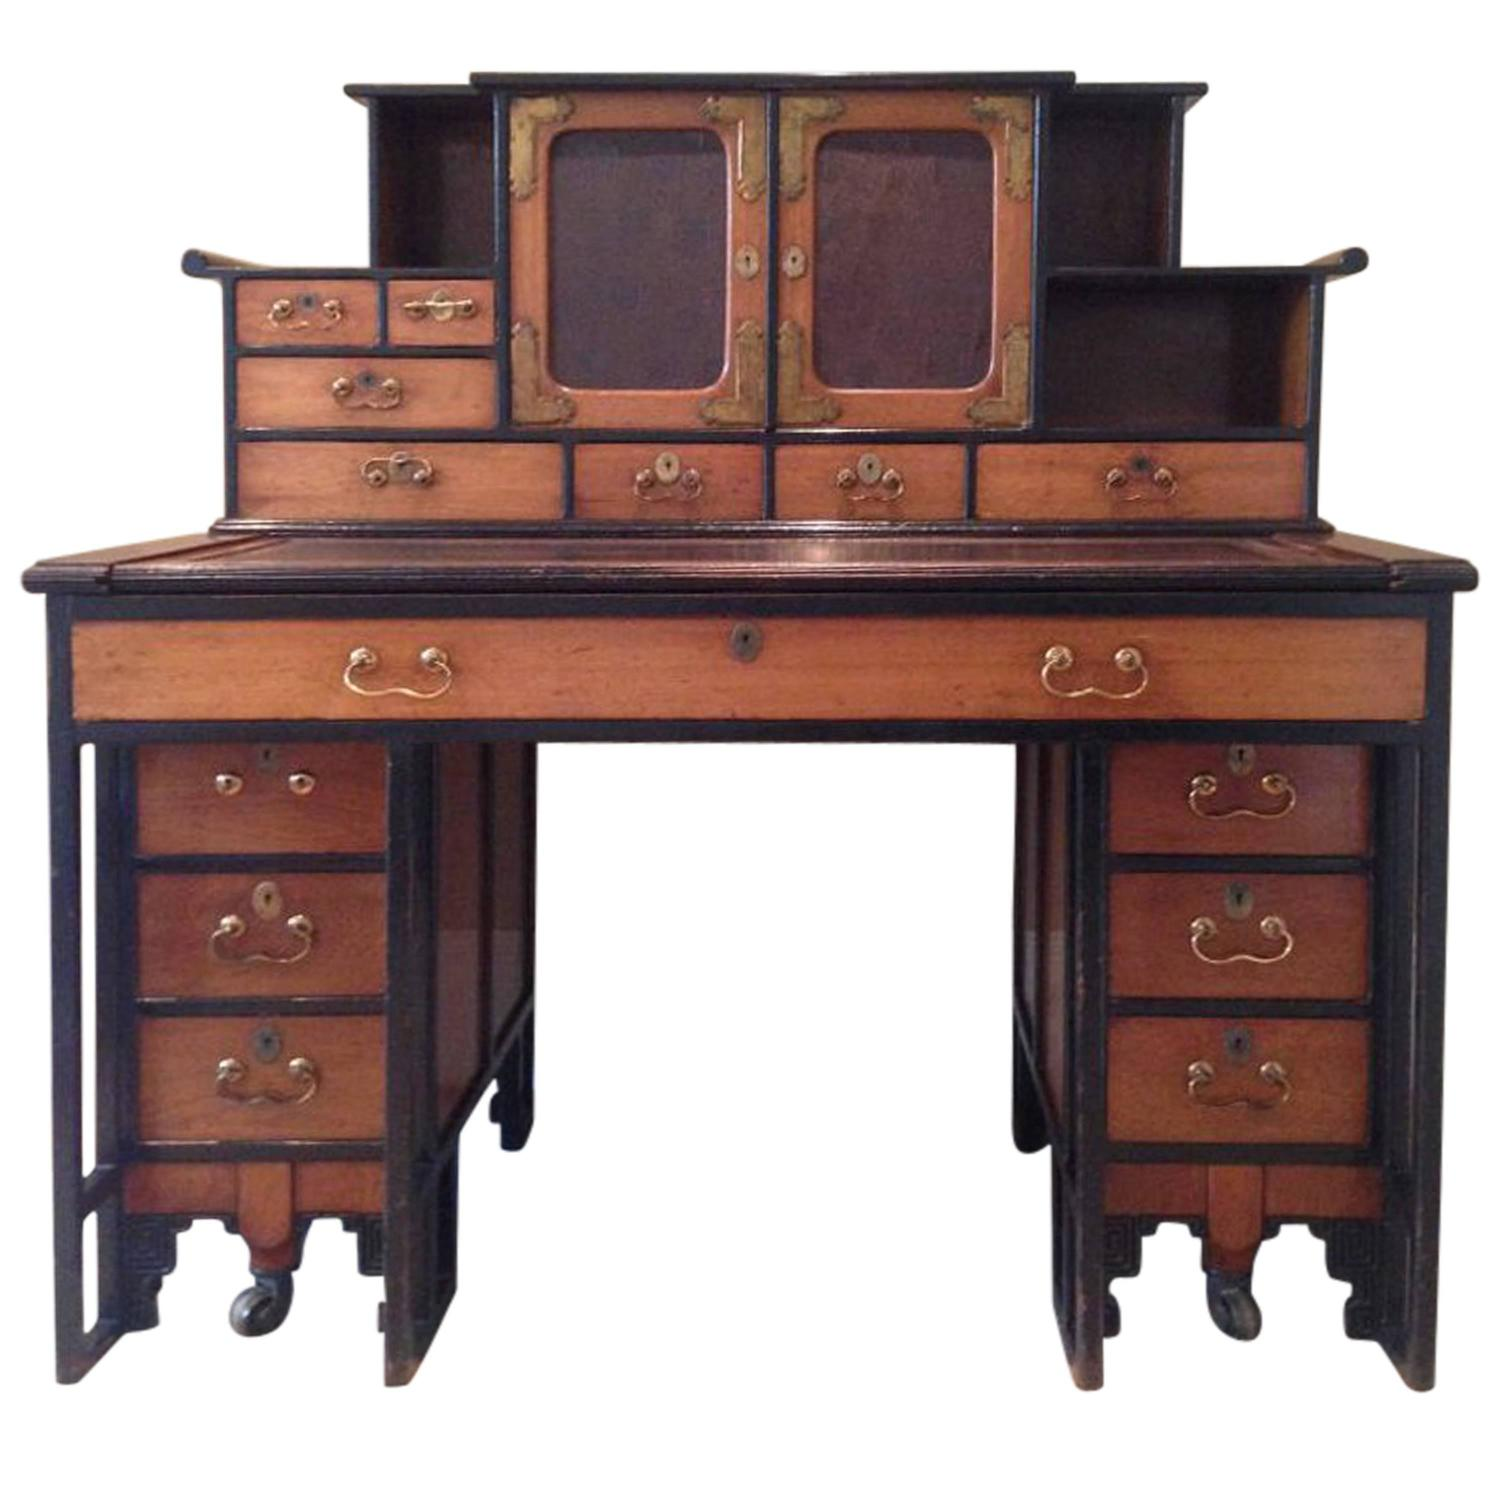 rare walnut desk in the anglo japanese style designed by. Black Bedroom Furniture Sets. Home Design Ideas